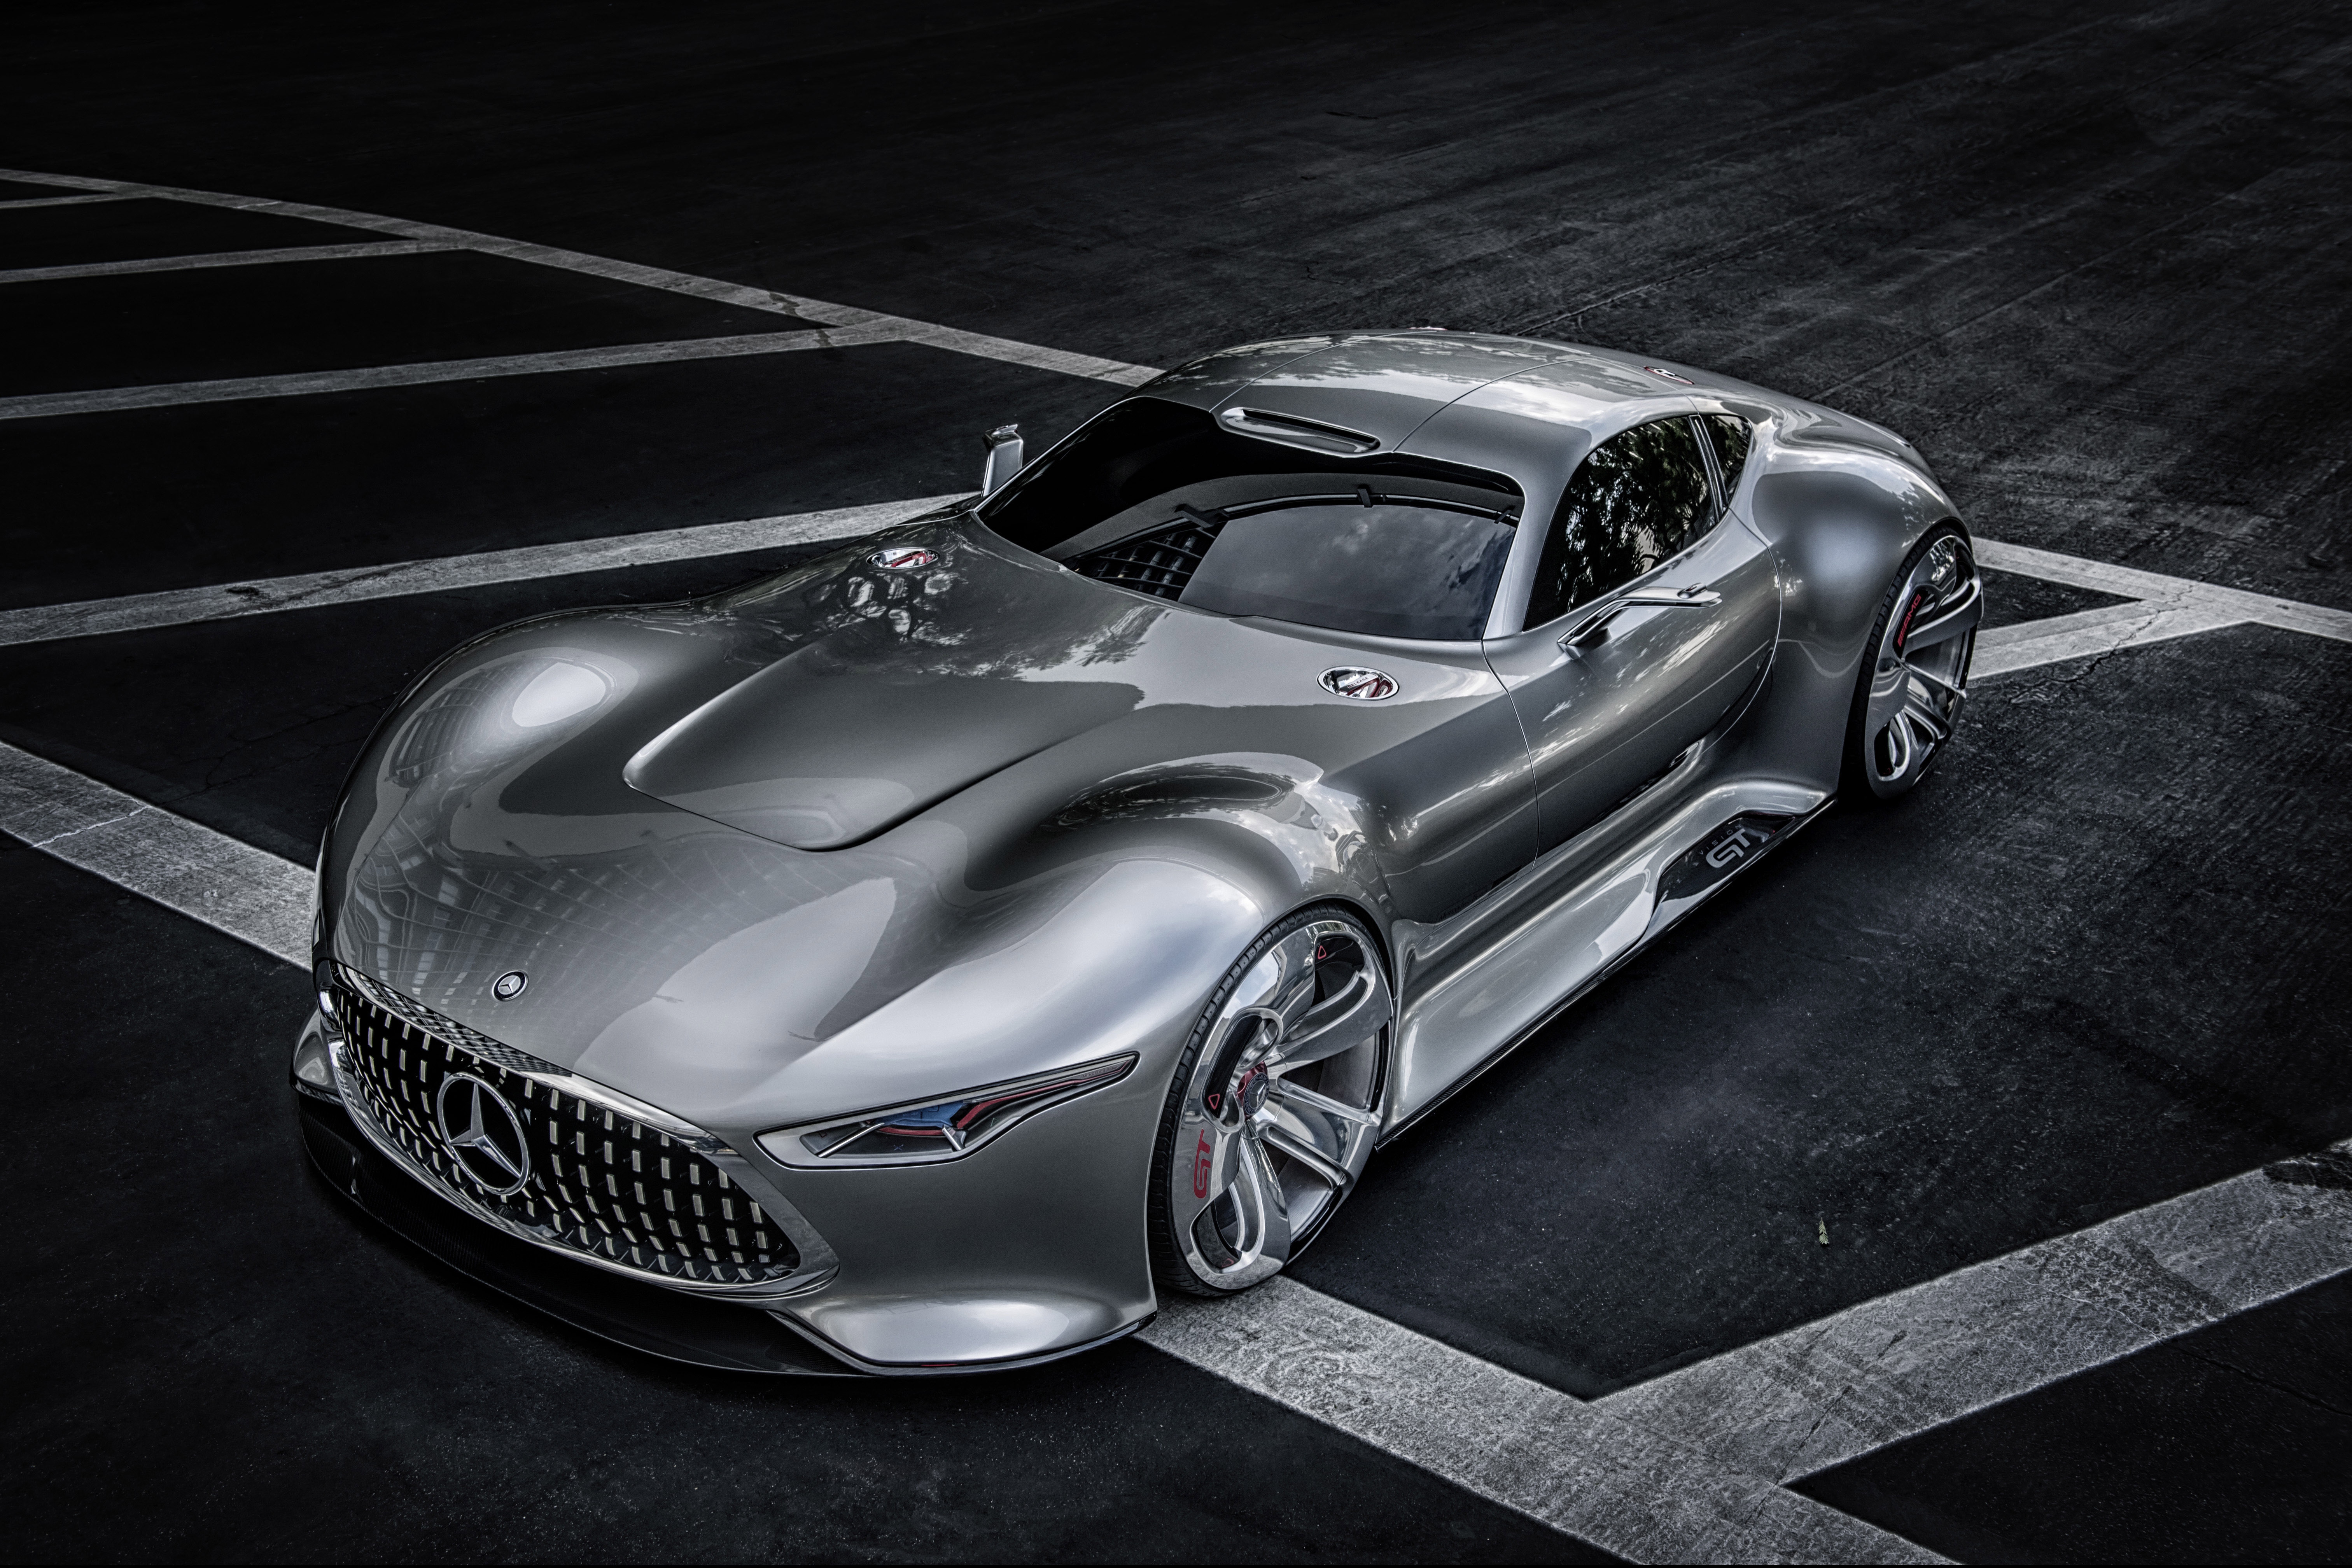 Awesome Mercedes Benz AMG Vision Gran Turismo